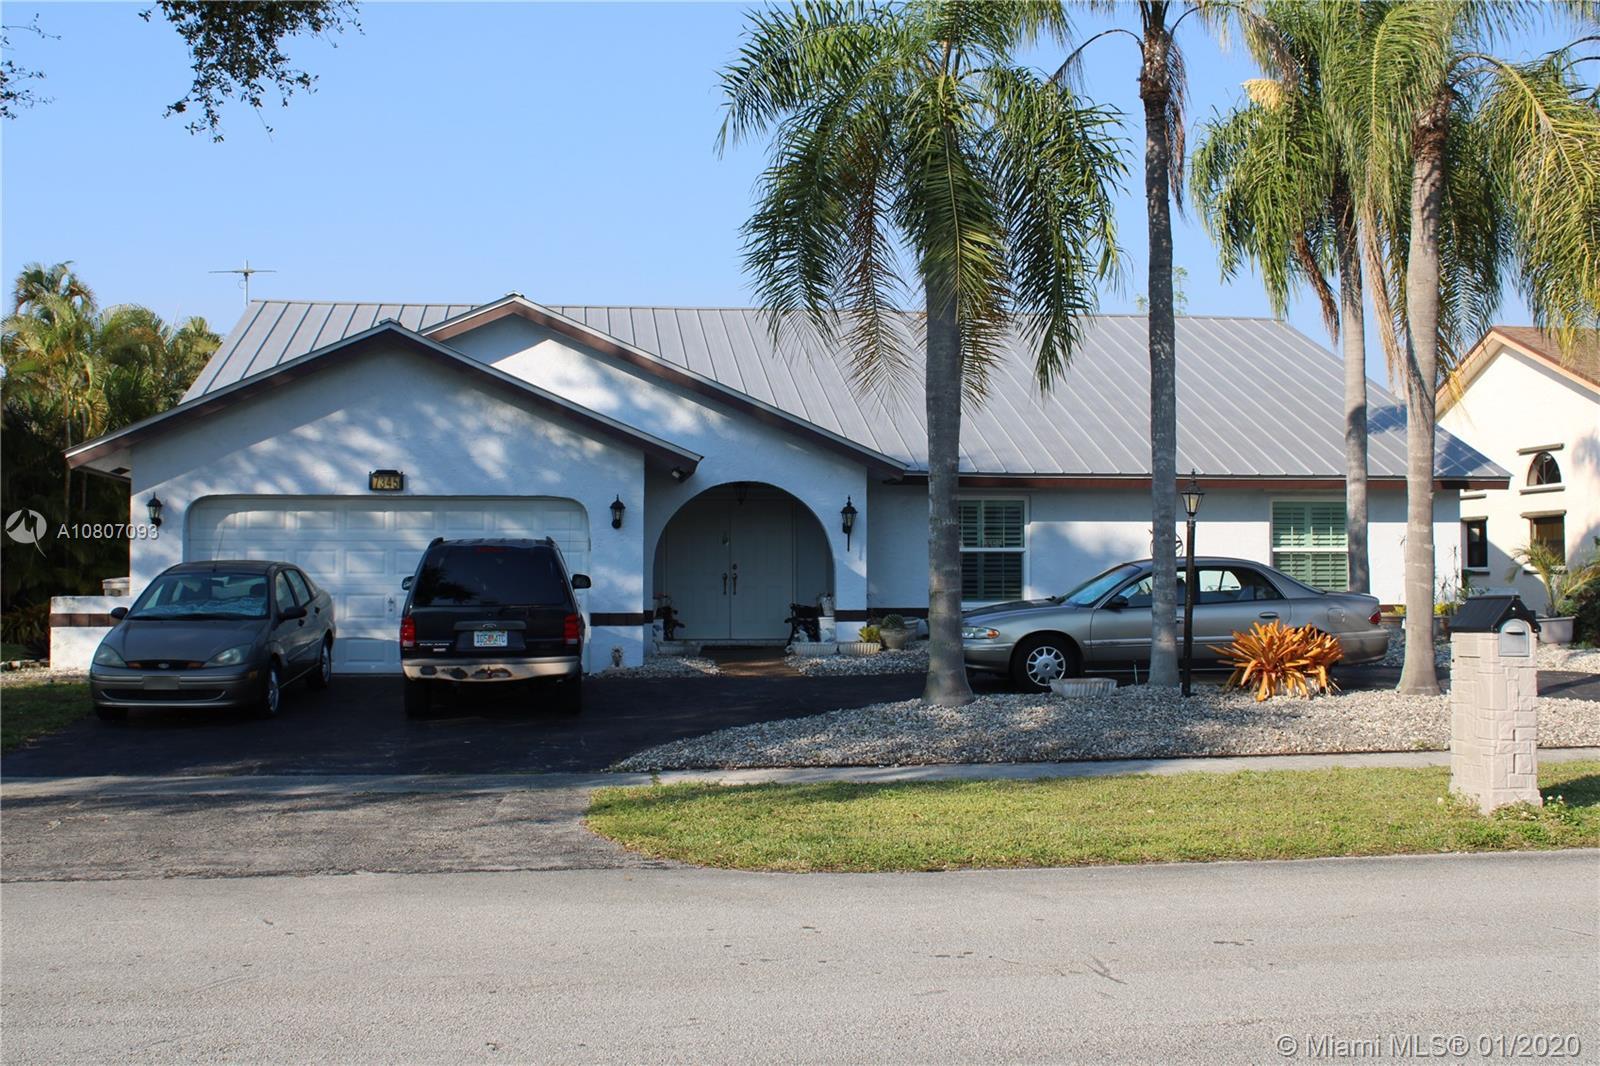 No HOA. New metal roof & metal fascia, new ac, new hurricane tinted windows, new copper pipes, upgraded insulation & wiring, new electrical box, screened pool & hot tub, electrical box for generator for entire house has been installed, tv antenna installed, fenced back yard with addl fenced dog run, security system, 2 car garage with circular drive, shed in backyard, plantation/bahama shutters on windows/doors, vaulted ceilings, ss appliances, security system, huge closets. Pantry has it's own room! Full living room, dining room and family room. Fabulous location just east of university & commercial blvd.